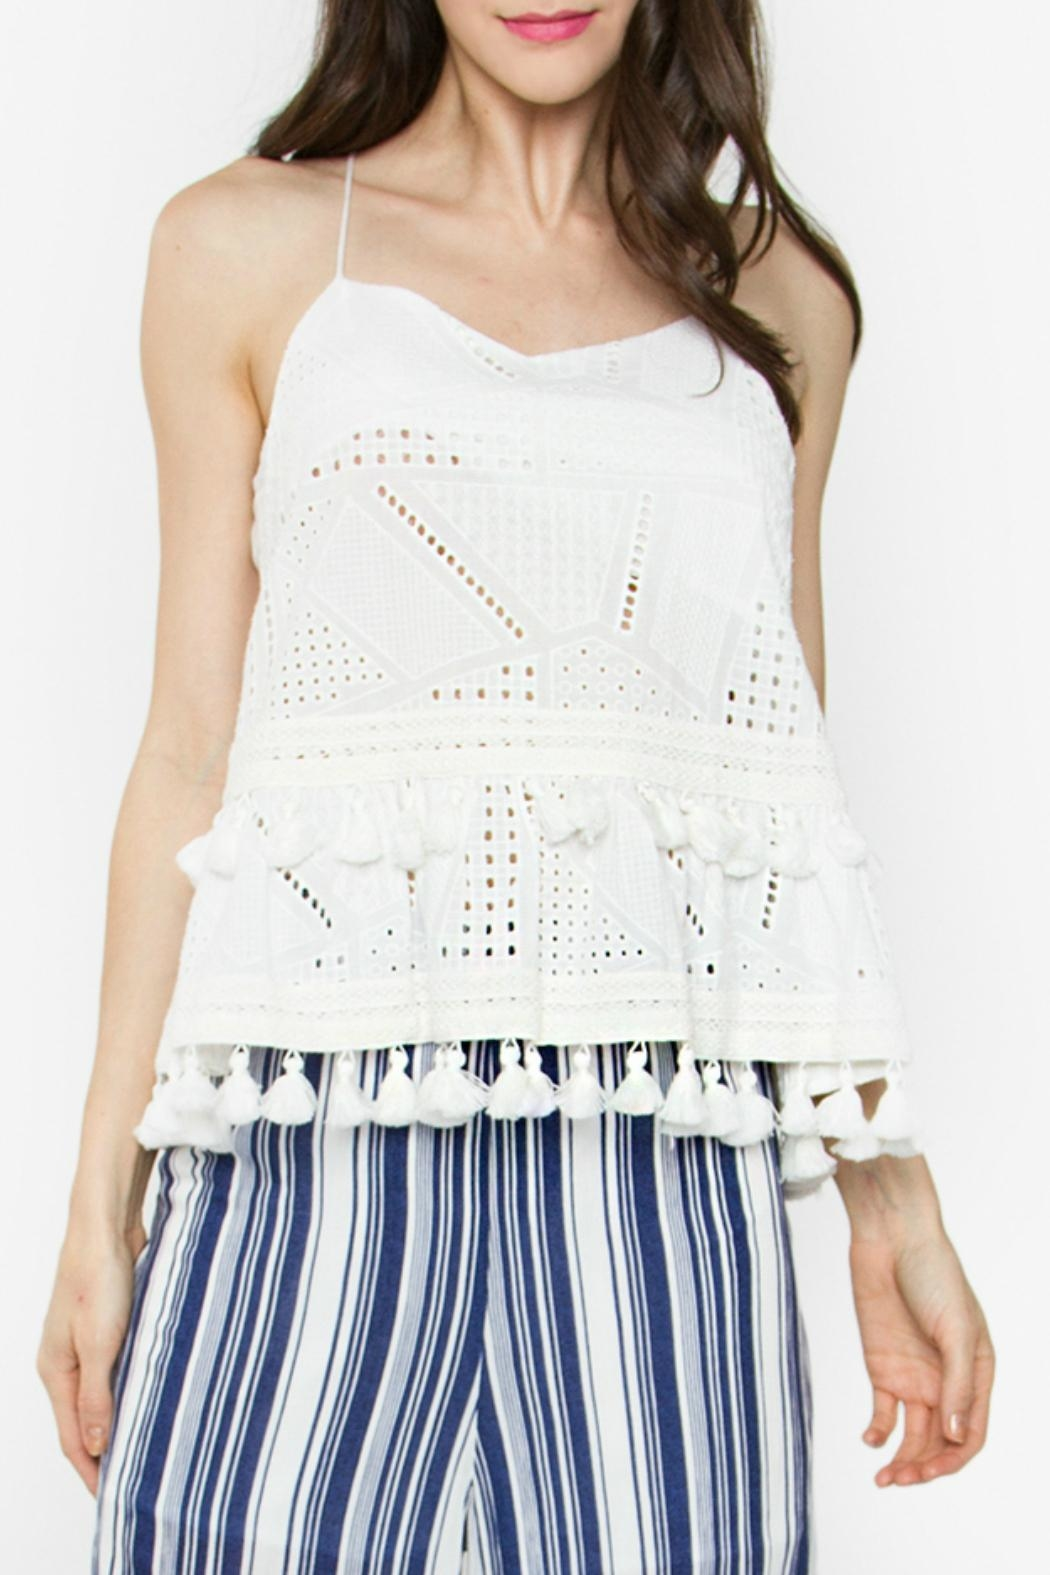 Sugar Lips White Eyelet Top - Front Cropped Image